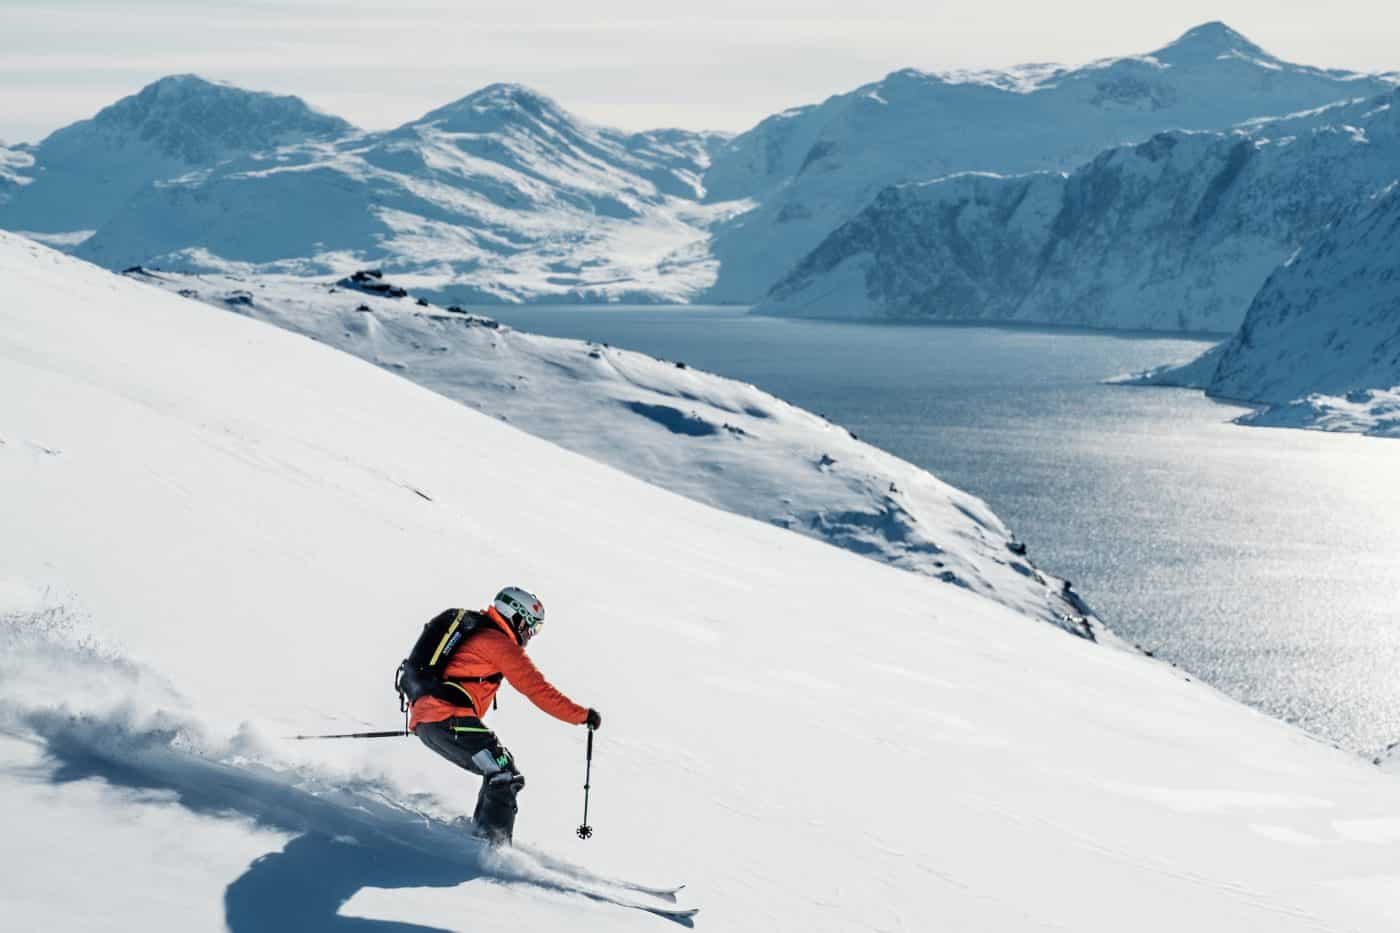 Skiers arrive to their cabin in Qooqqut to start a ski weekend. Photo by Petter Cohen, Xtravel